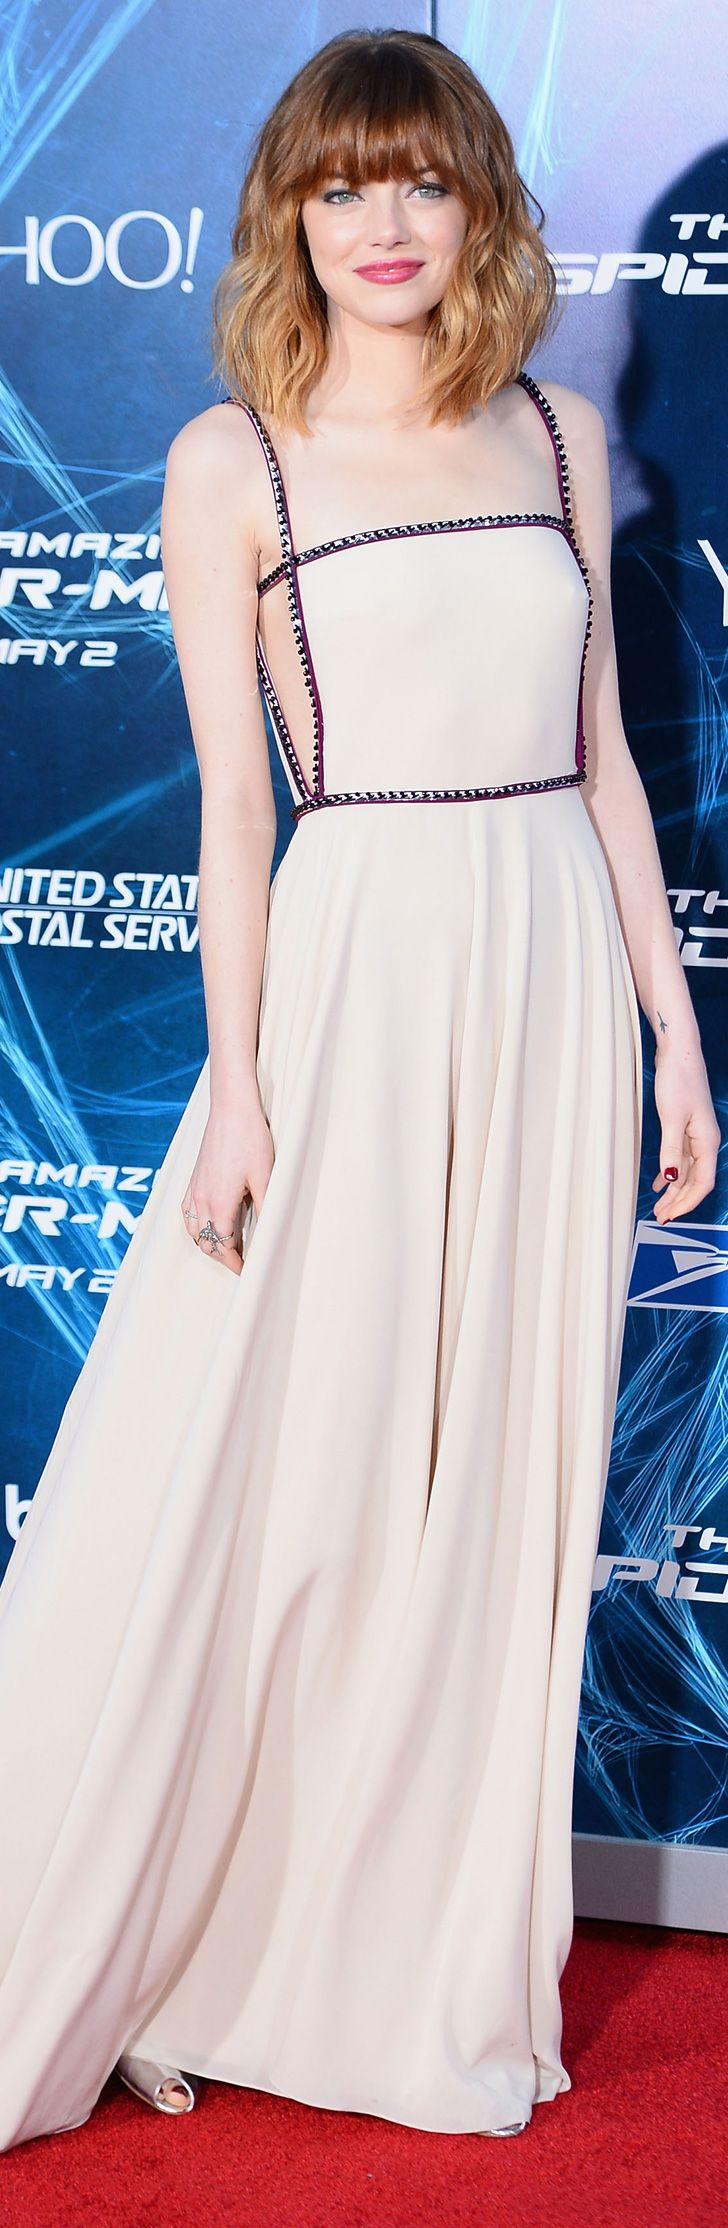 A hint of skin on the side was as good a surprise as any at Emma Stone's New York premiere.